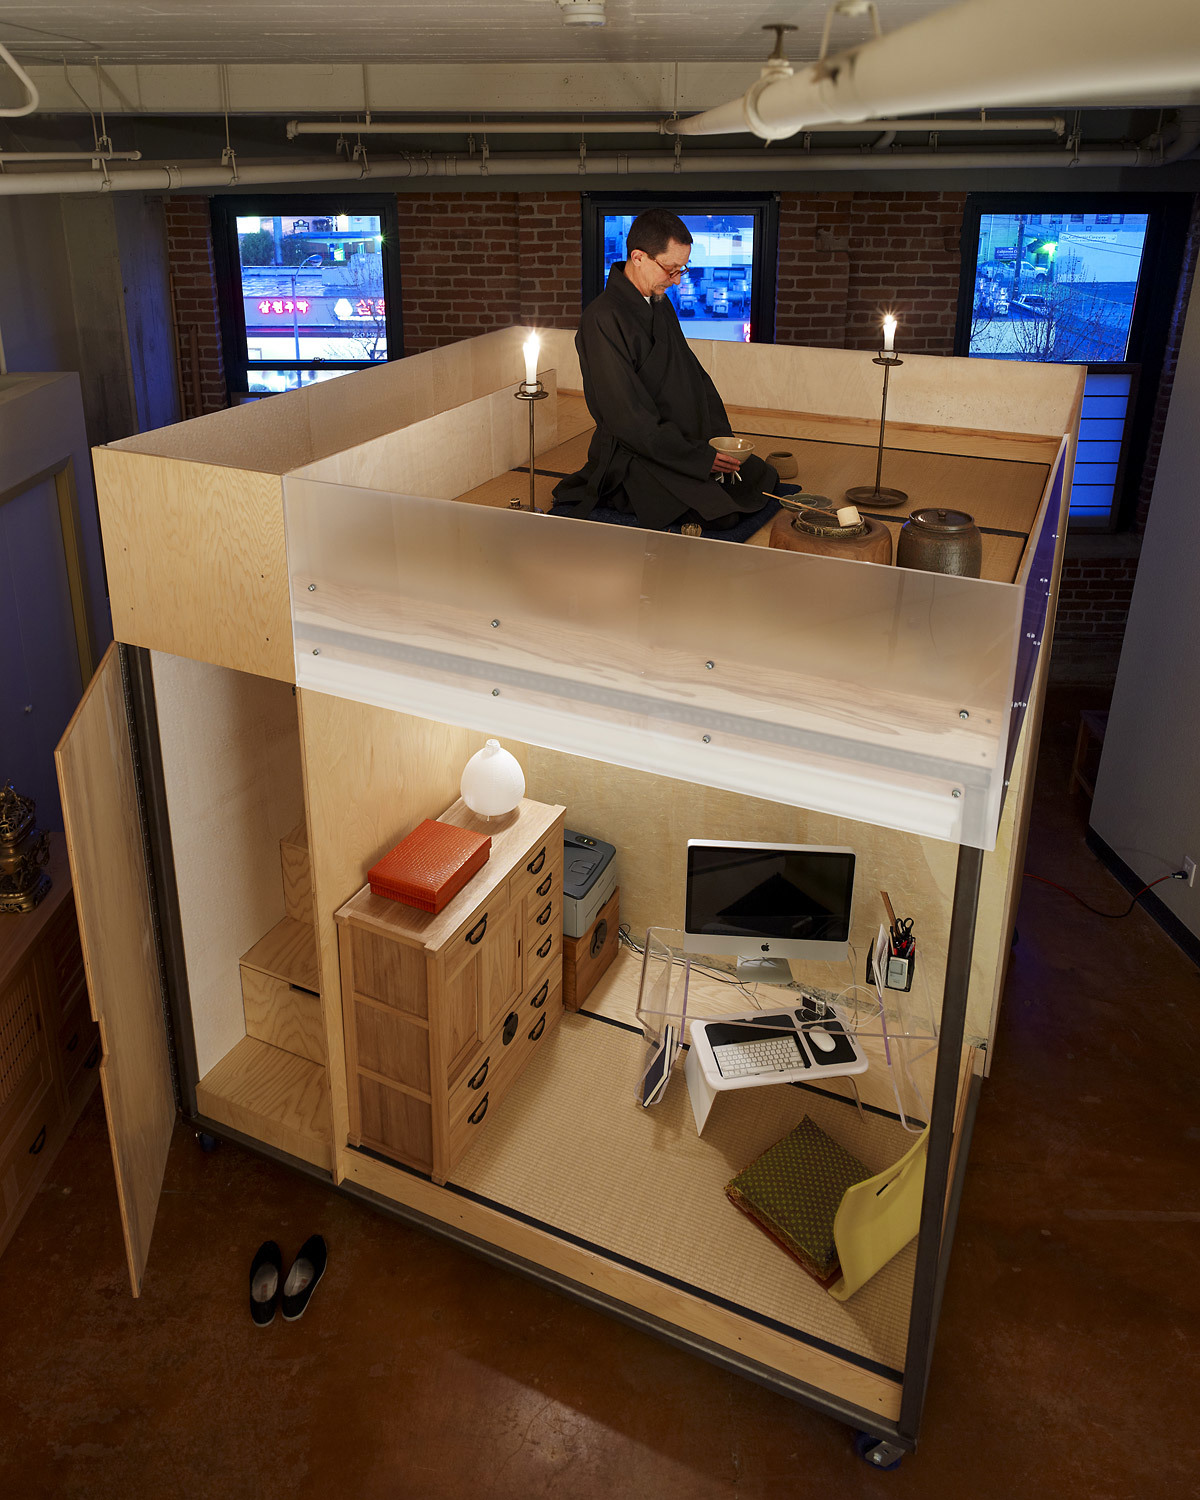 The Mobile Dwelling Cube; Oakland, CA by SPACEFLAVOR (Photo: Jasmine Rose Oberste)